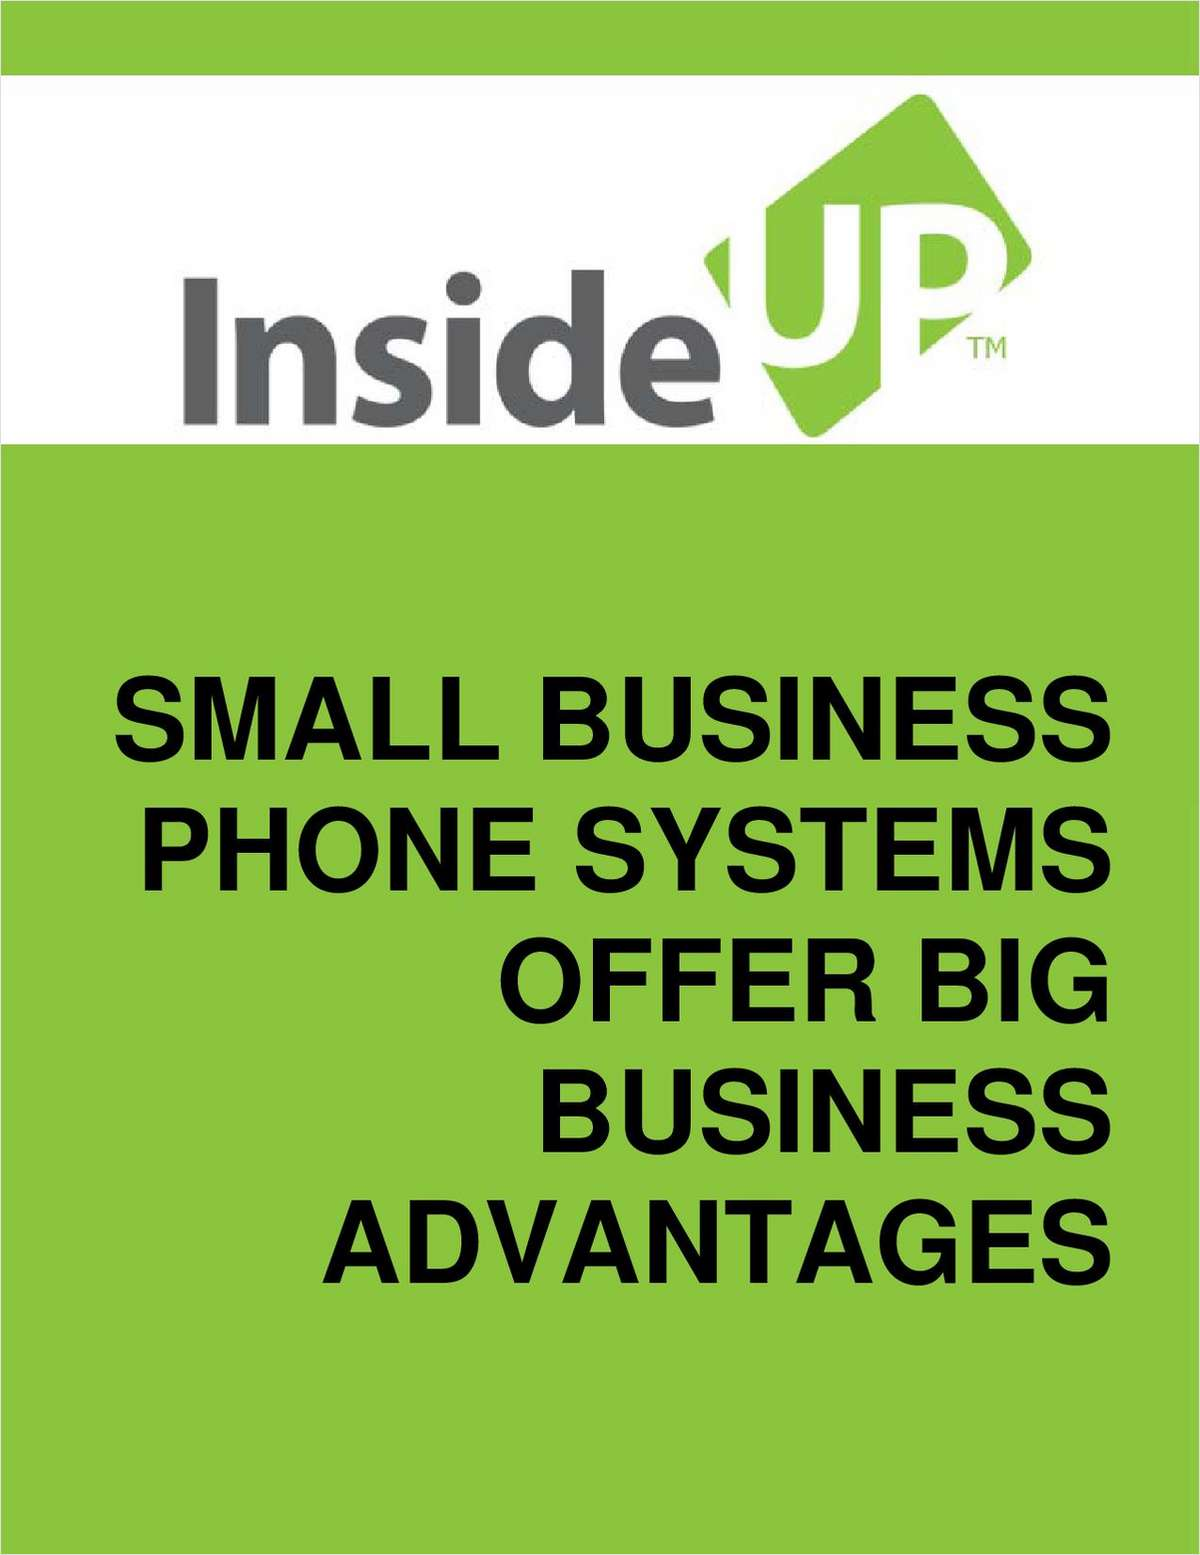 How a Business Phone System can Give Your Small Business an Advantage